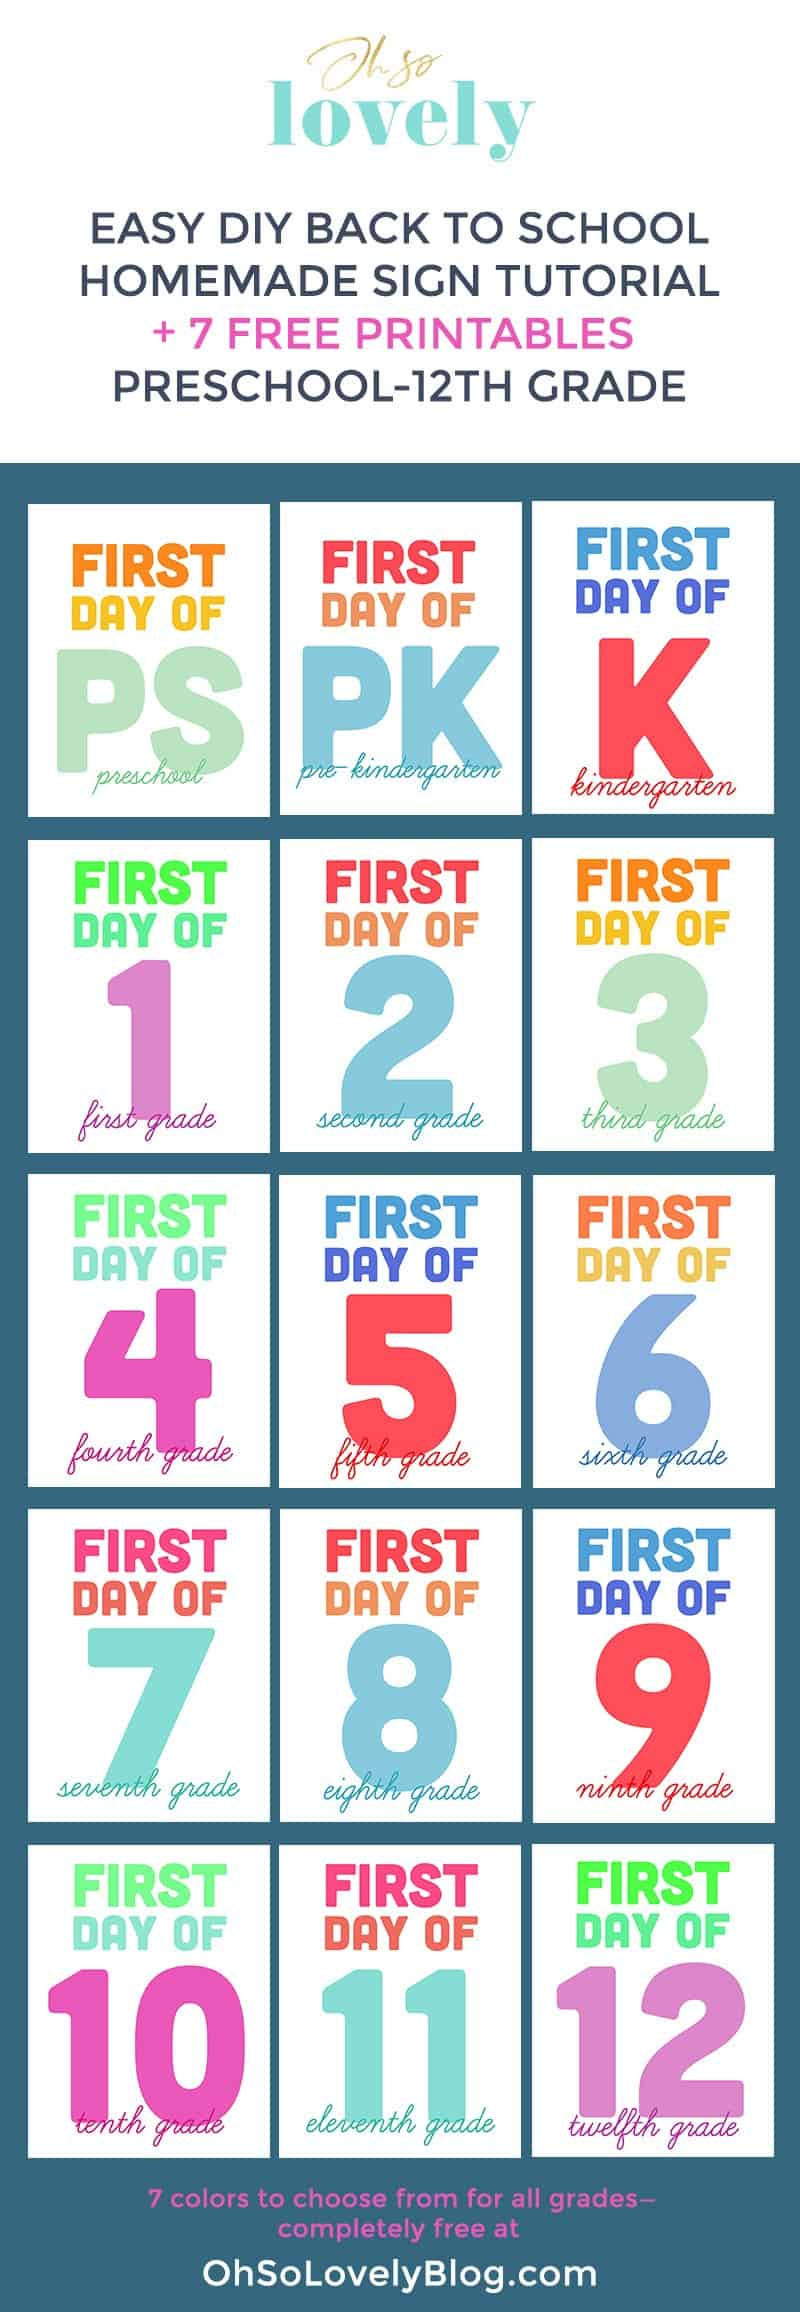 medium resolution of DIY homemade back to school sign and free printable signs